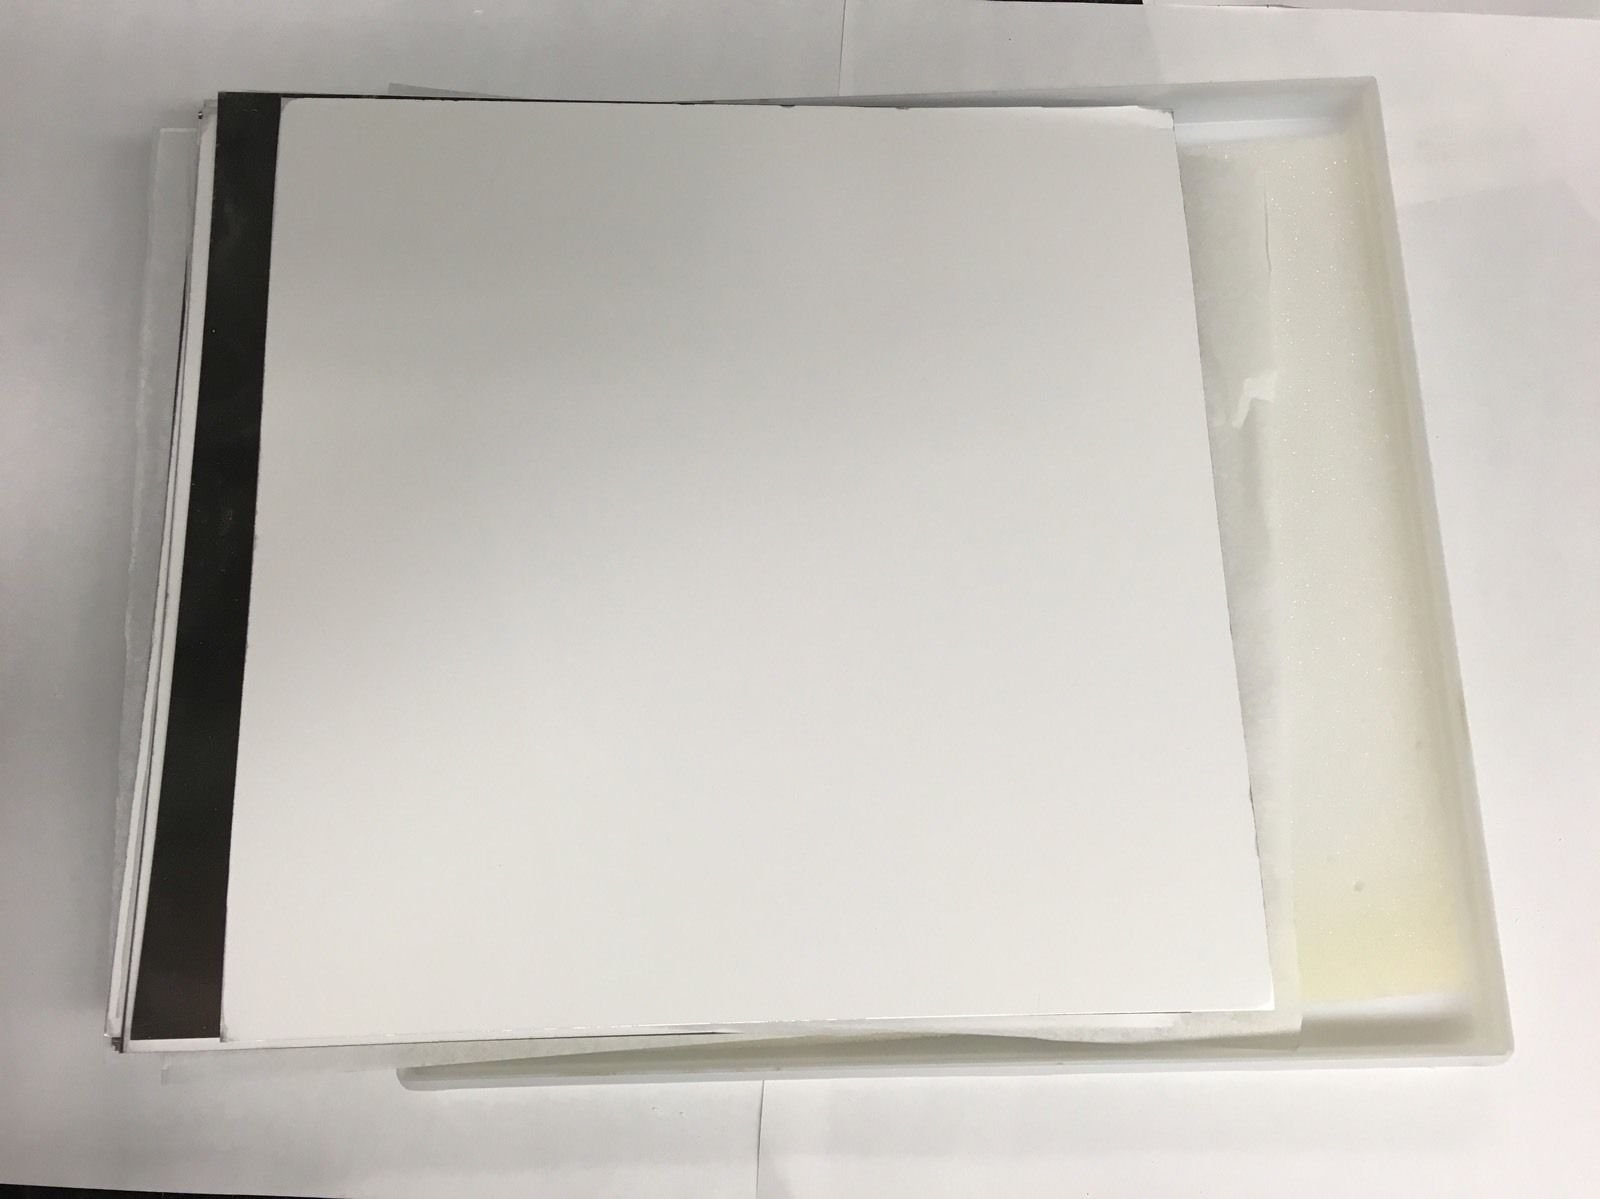 TLC Silica Plates Aluminum Backed GF254 20cm x 20cm 12/box